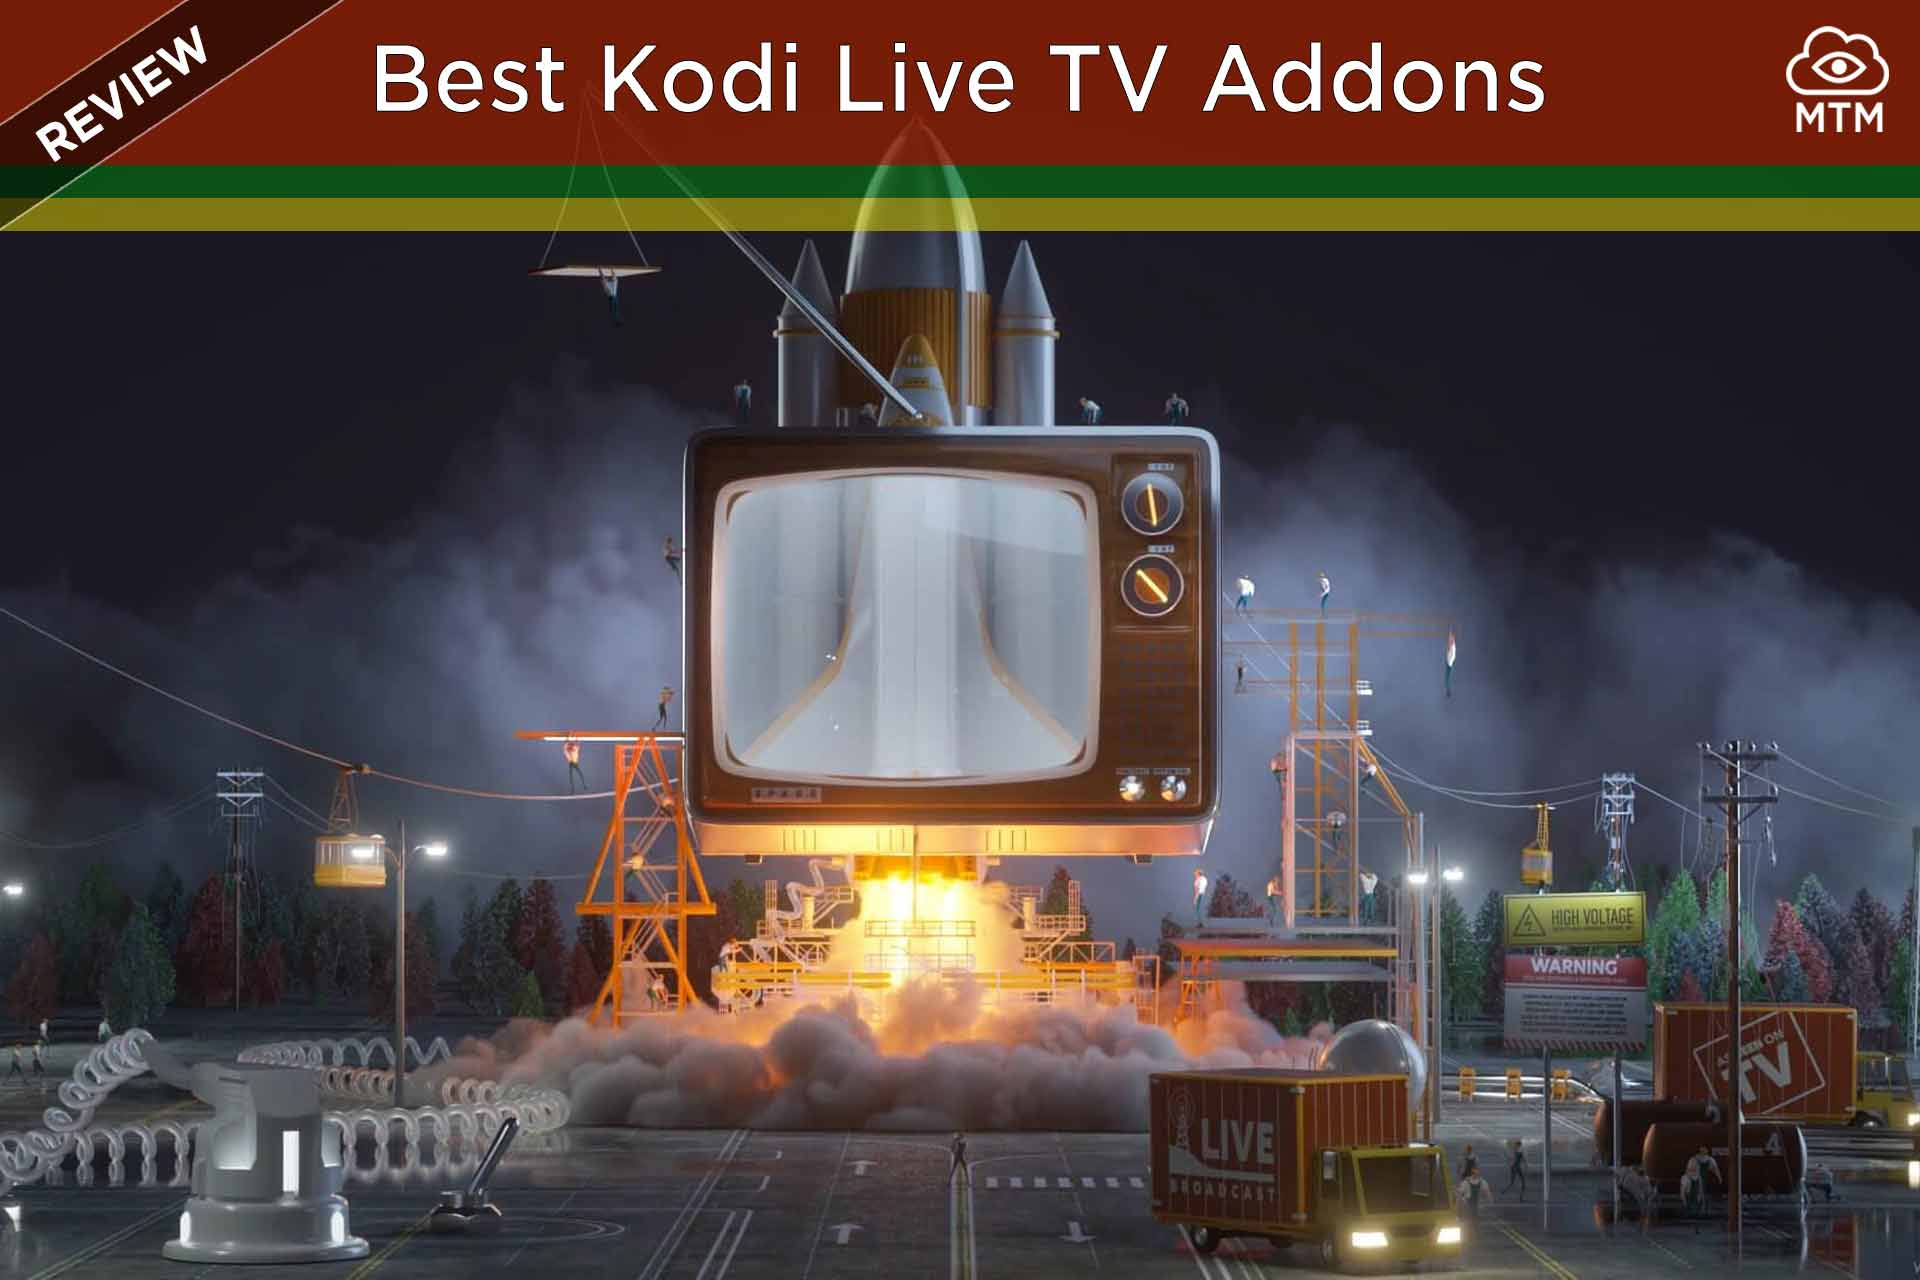 Top 15 Best Live TV Kodi Addons for Free IPTV Streaming [May 2019]